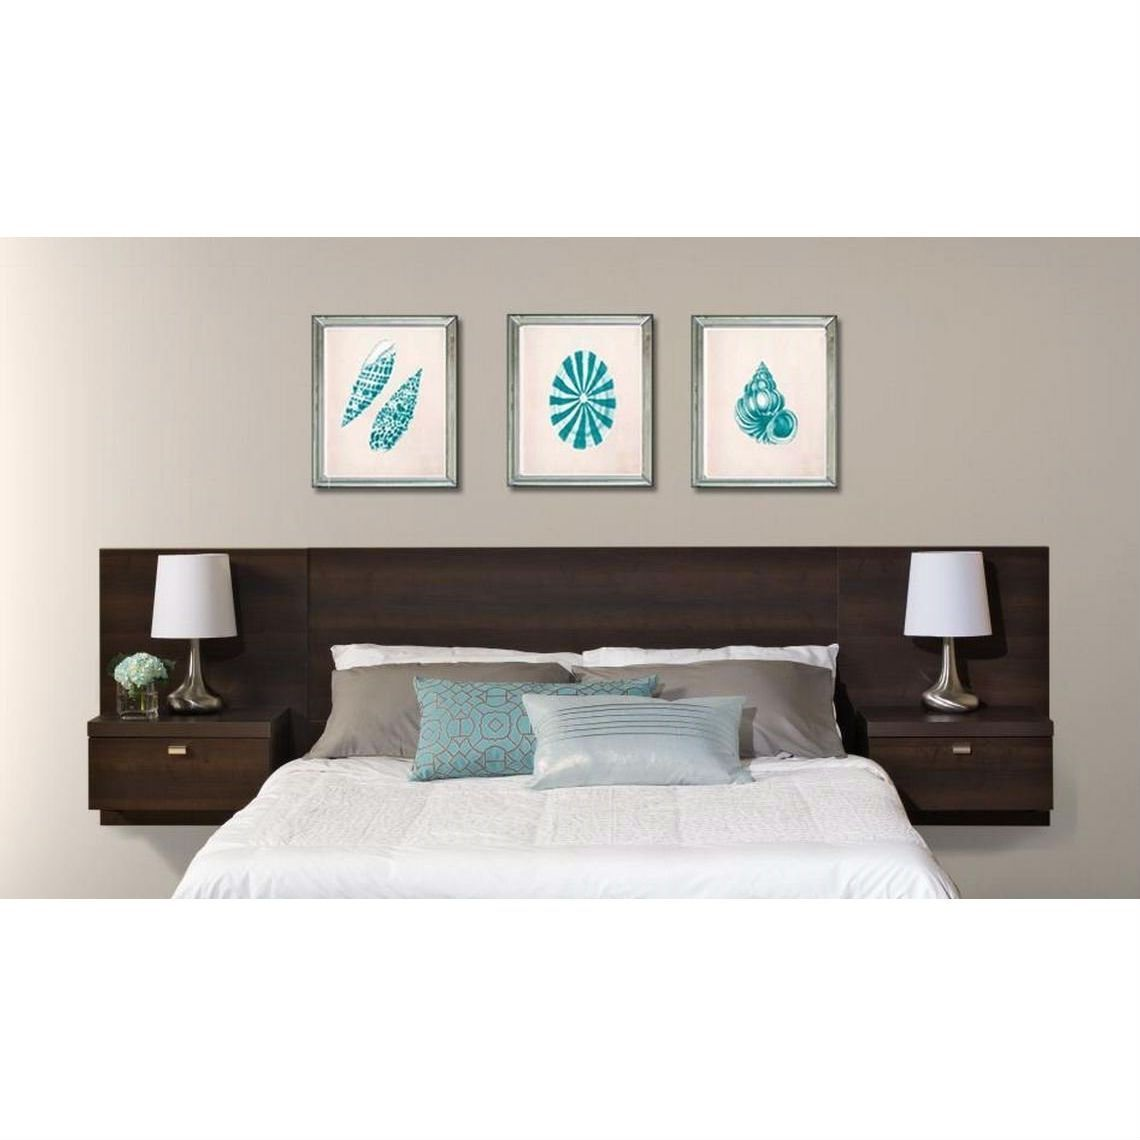 King Size Floating Headboard with Nightstands in Espresso | Cabecera ...